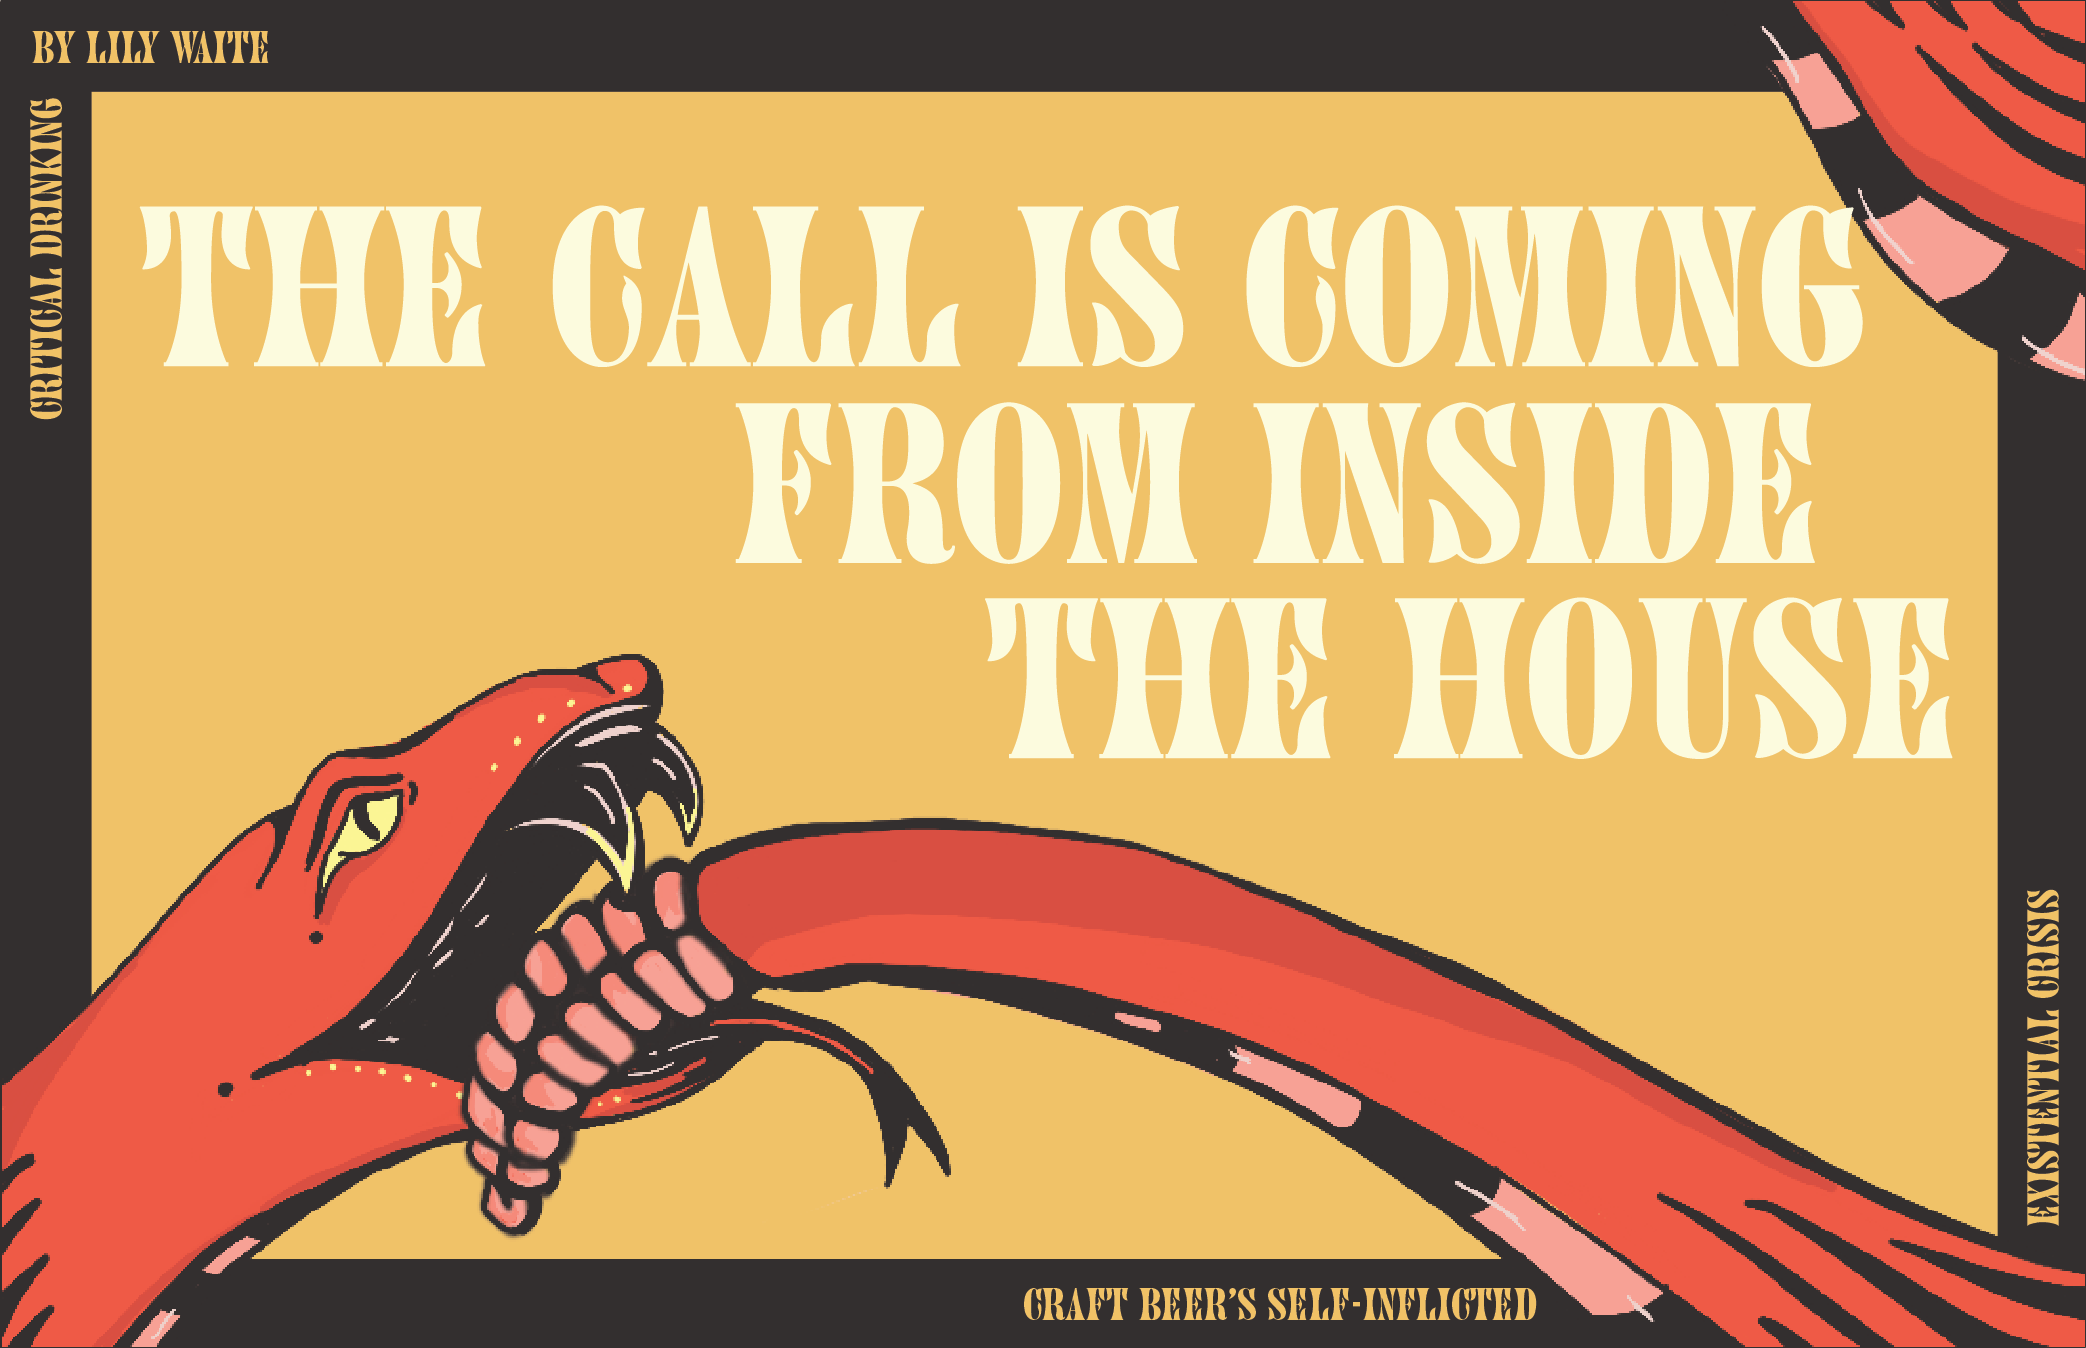 The Call Is Coming From Inside the House — Craft Beer's Self-Inflicted Existential Crisis